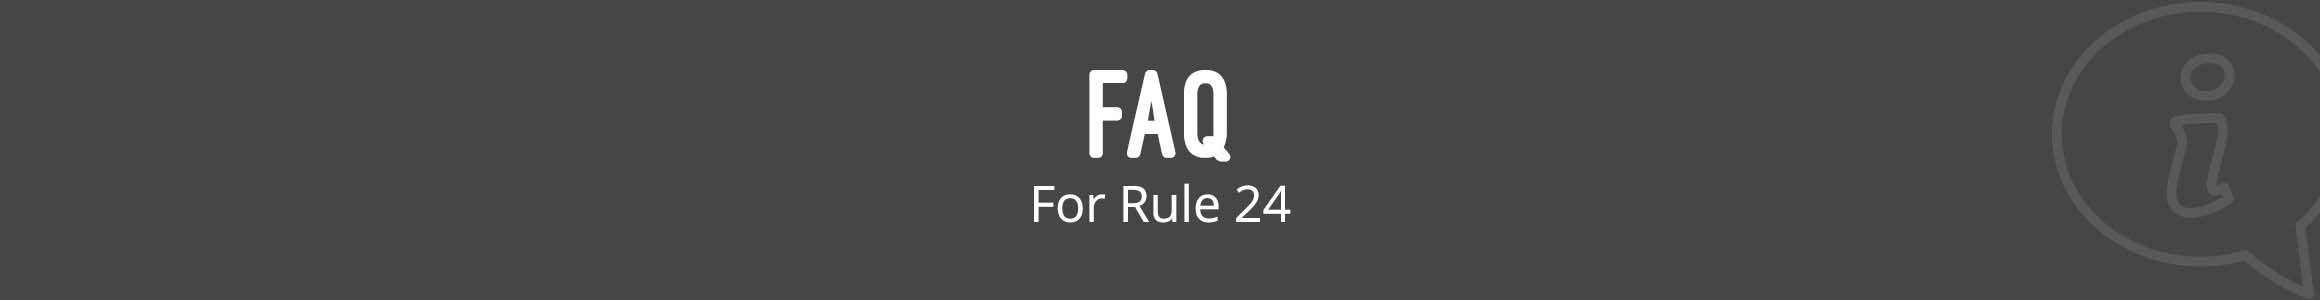 FAQs for Rule 24